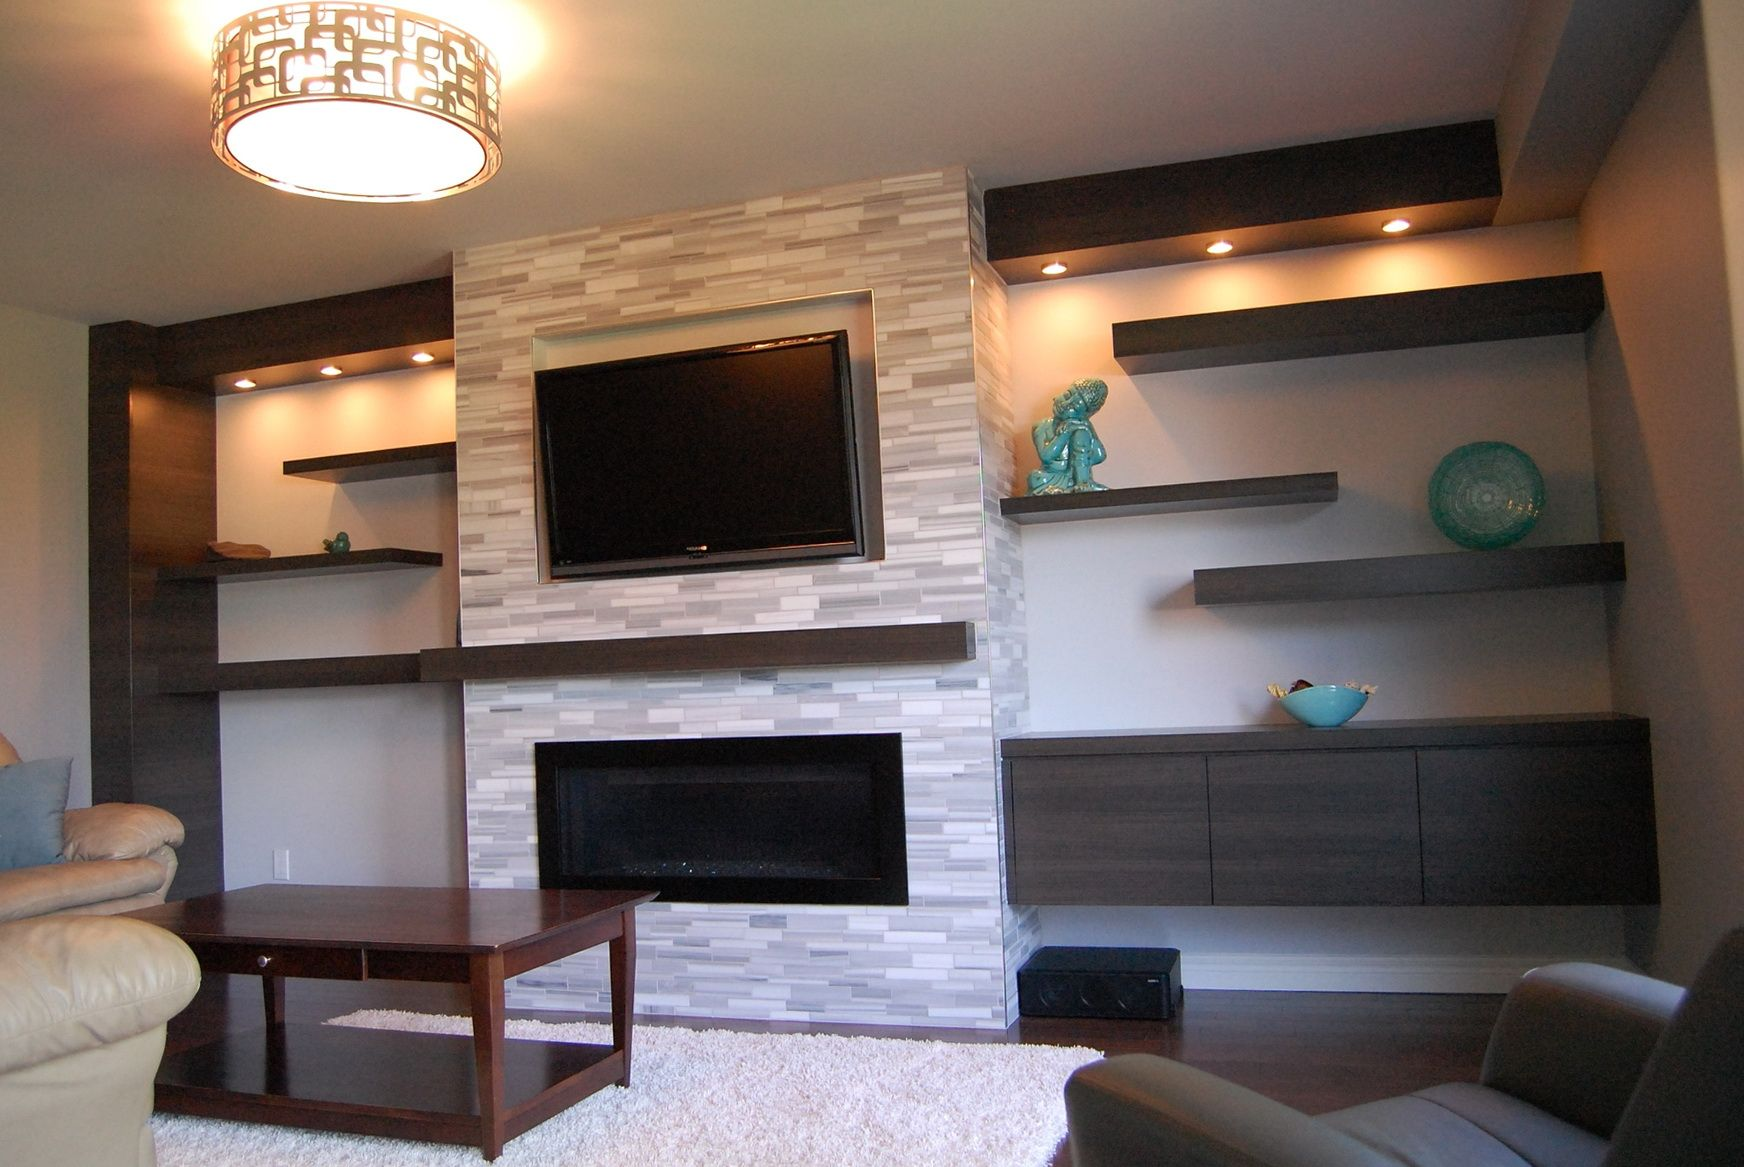 Wall Mount Tv Over Fireplace Ideas Fireplaces Pinterest Floating Cabinets Wall Mount And